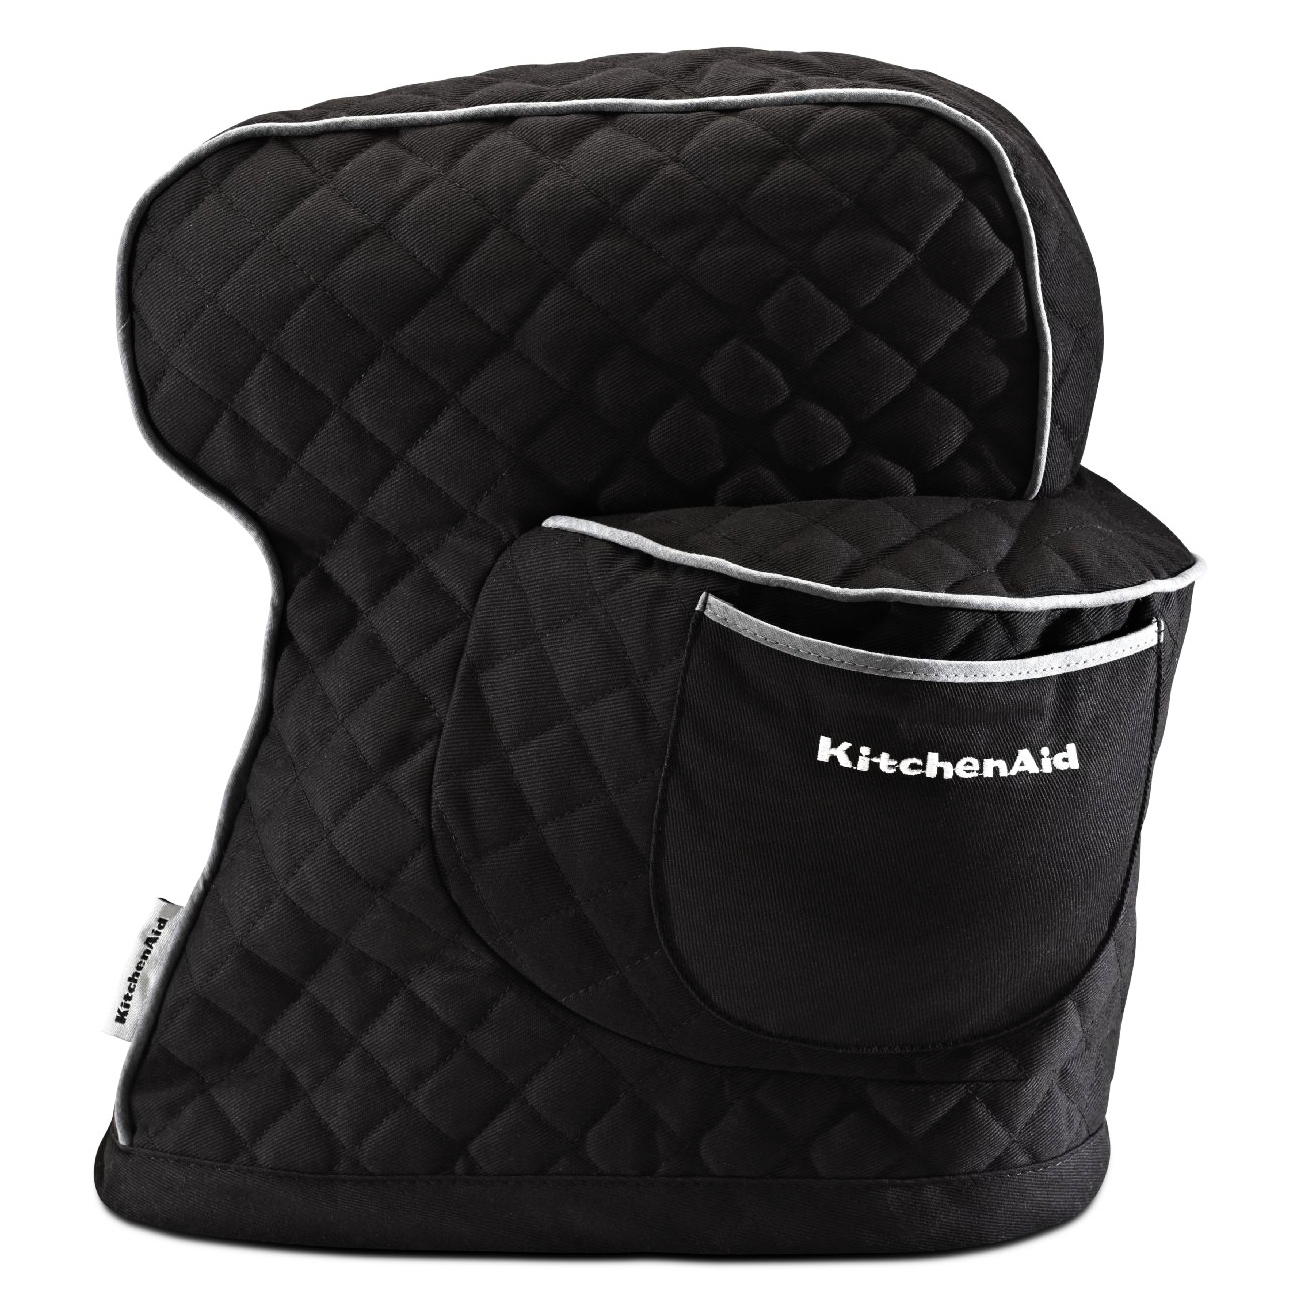 KitchenAid Onyx Black 100% Cotton Fitted Stand Mixer Cover